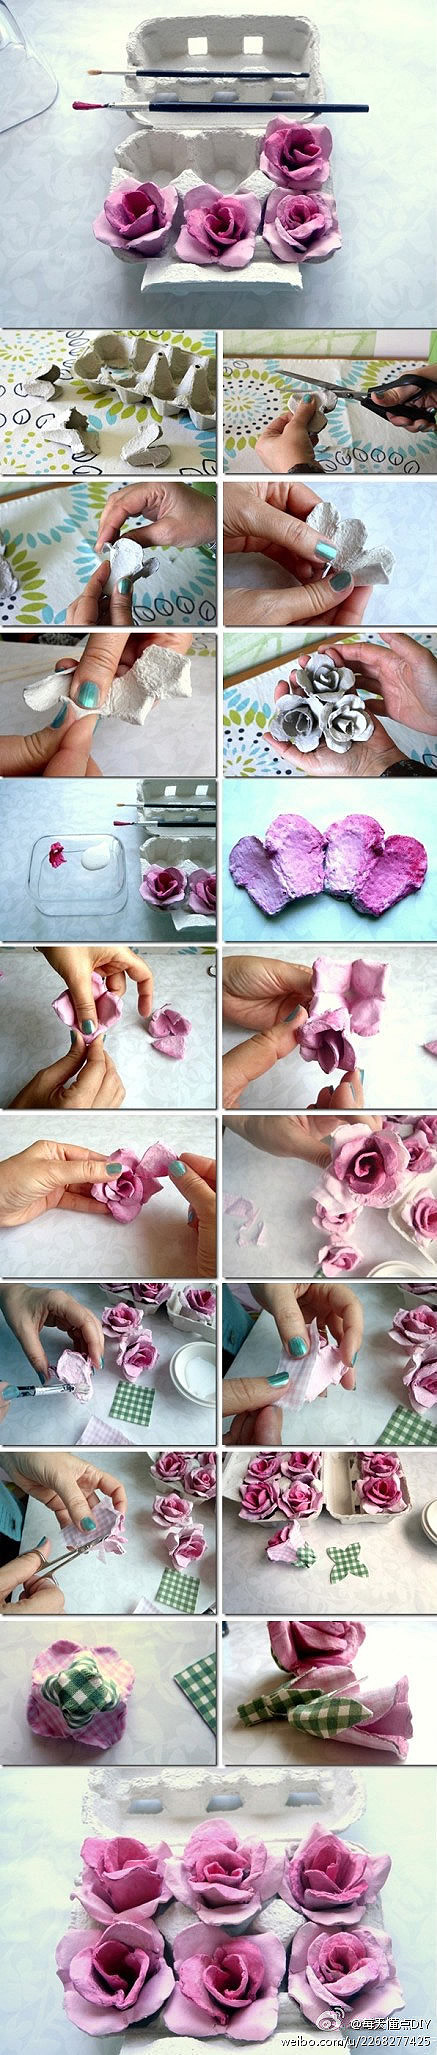 egg carton flowers making